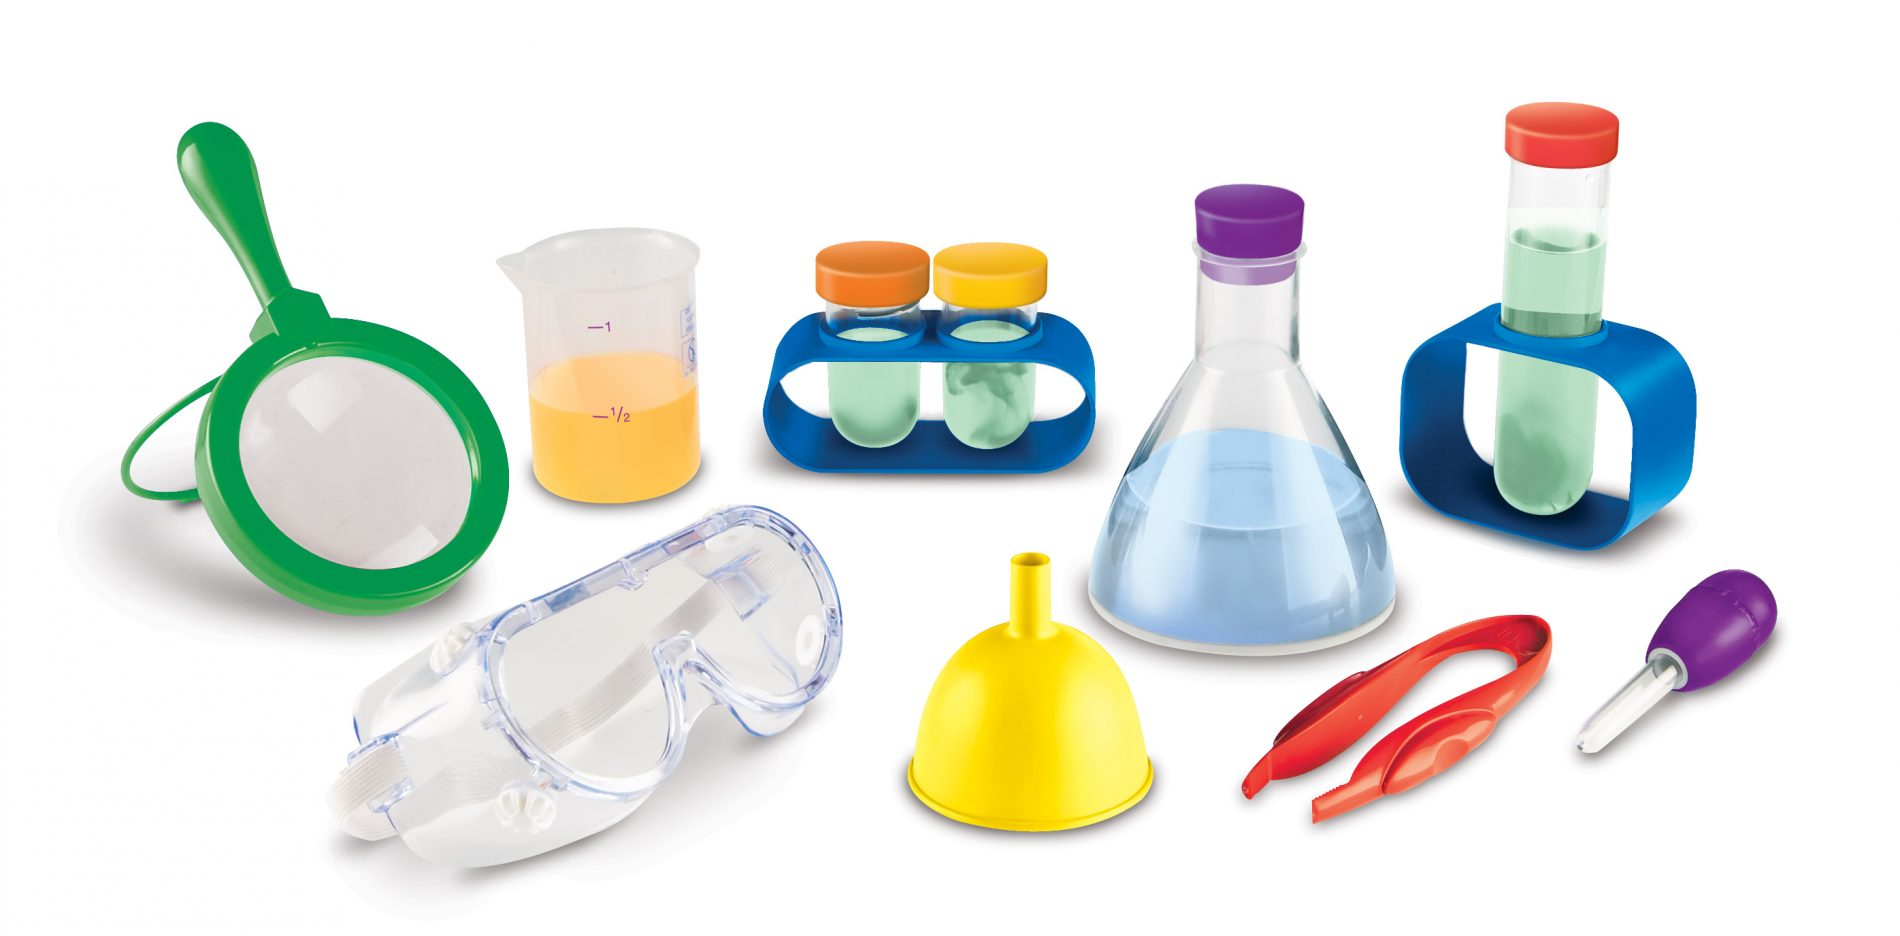 science lab tools primary scientist resources experiments materials experiment items learning scientists experimenting play project raisins objects livebinder line toys